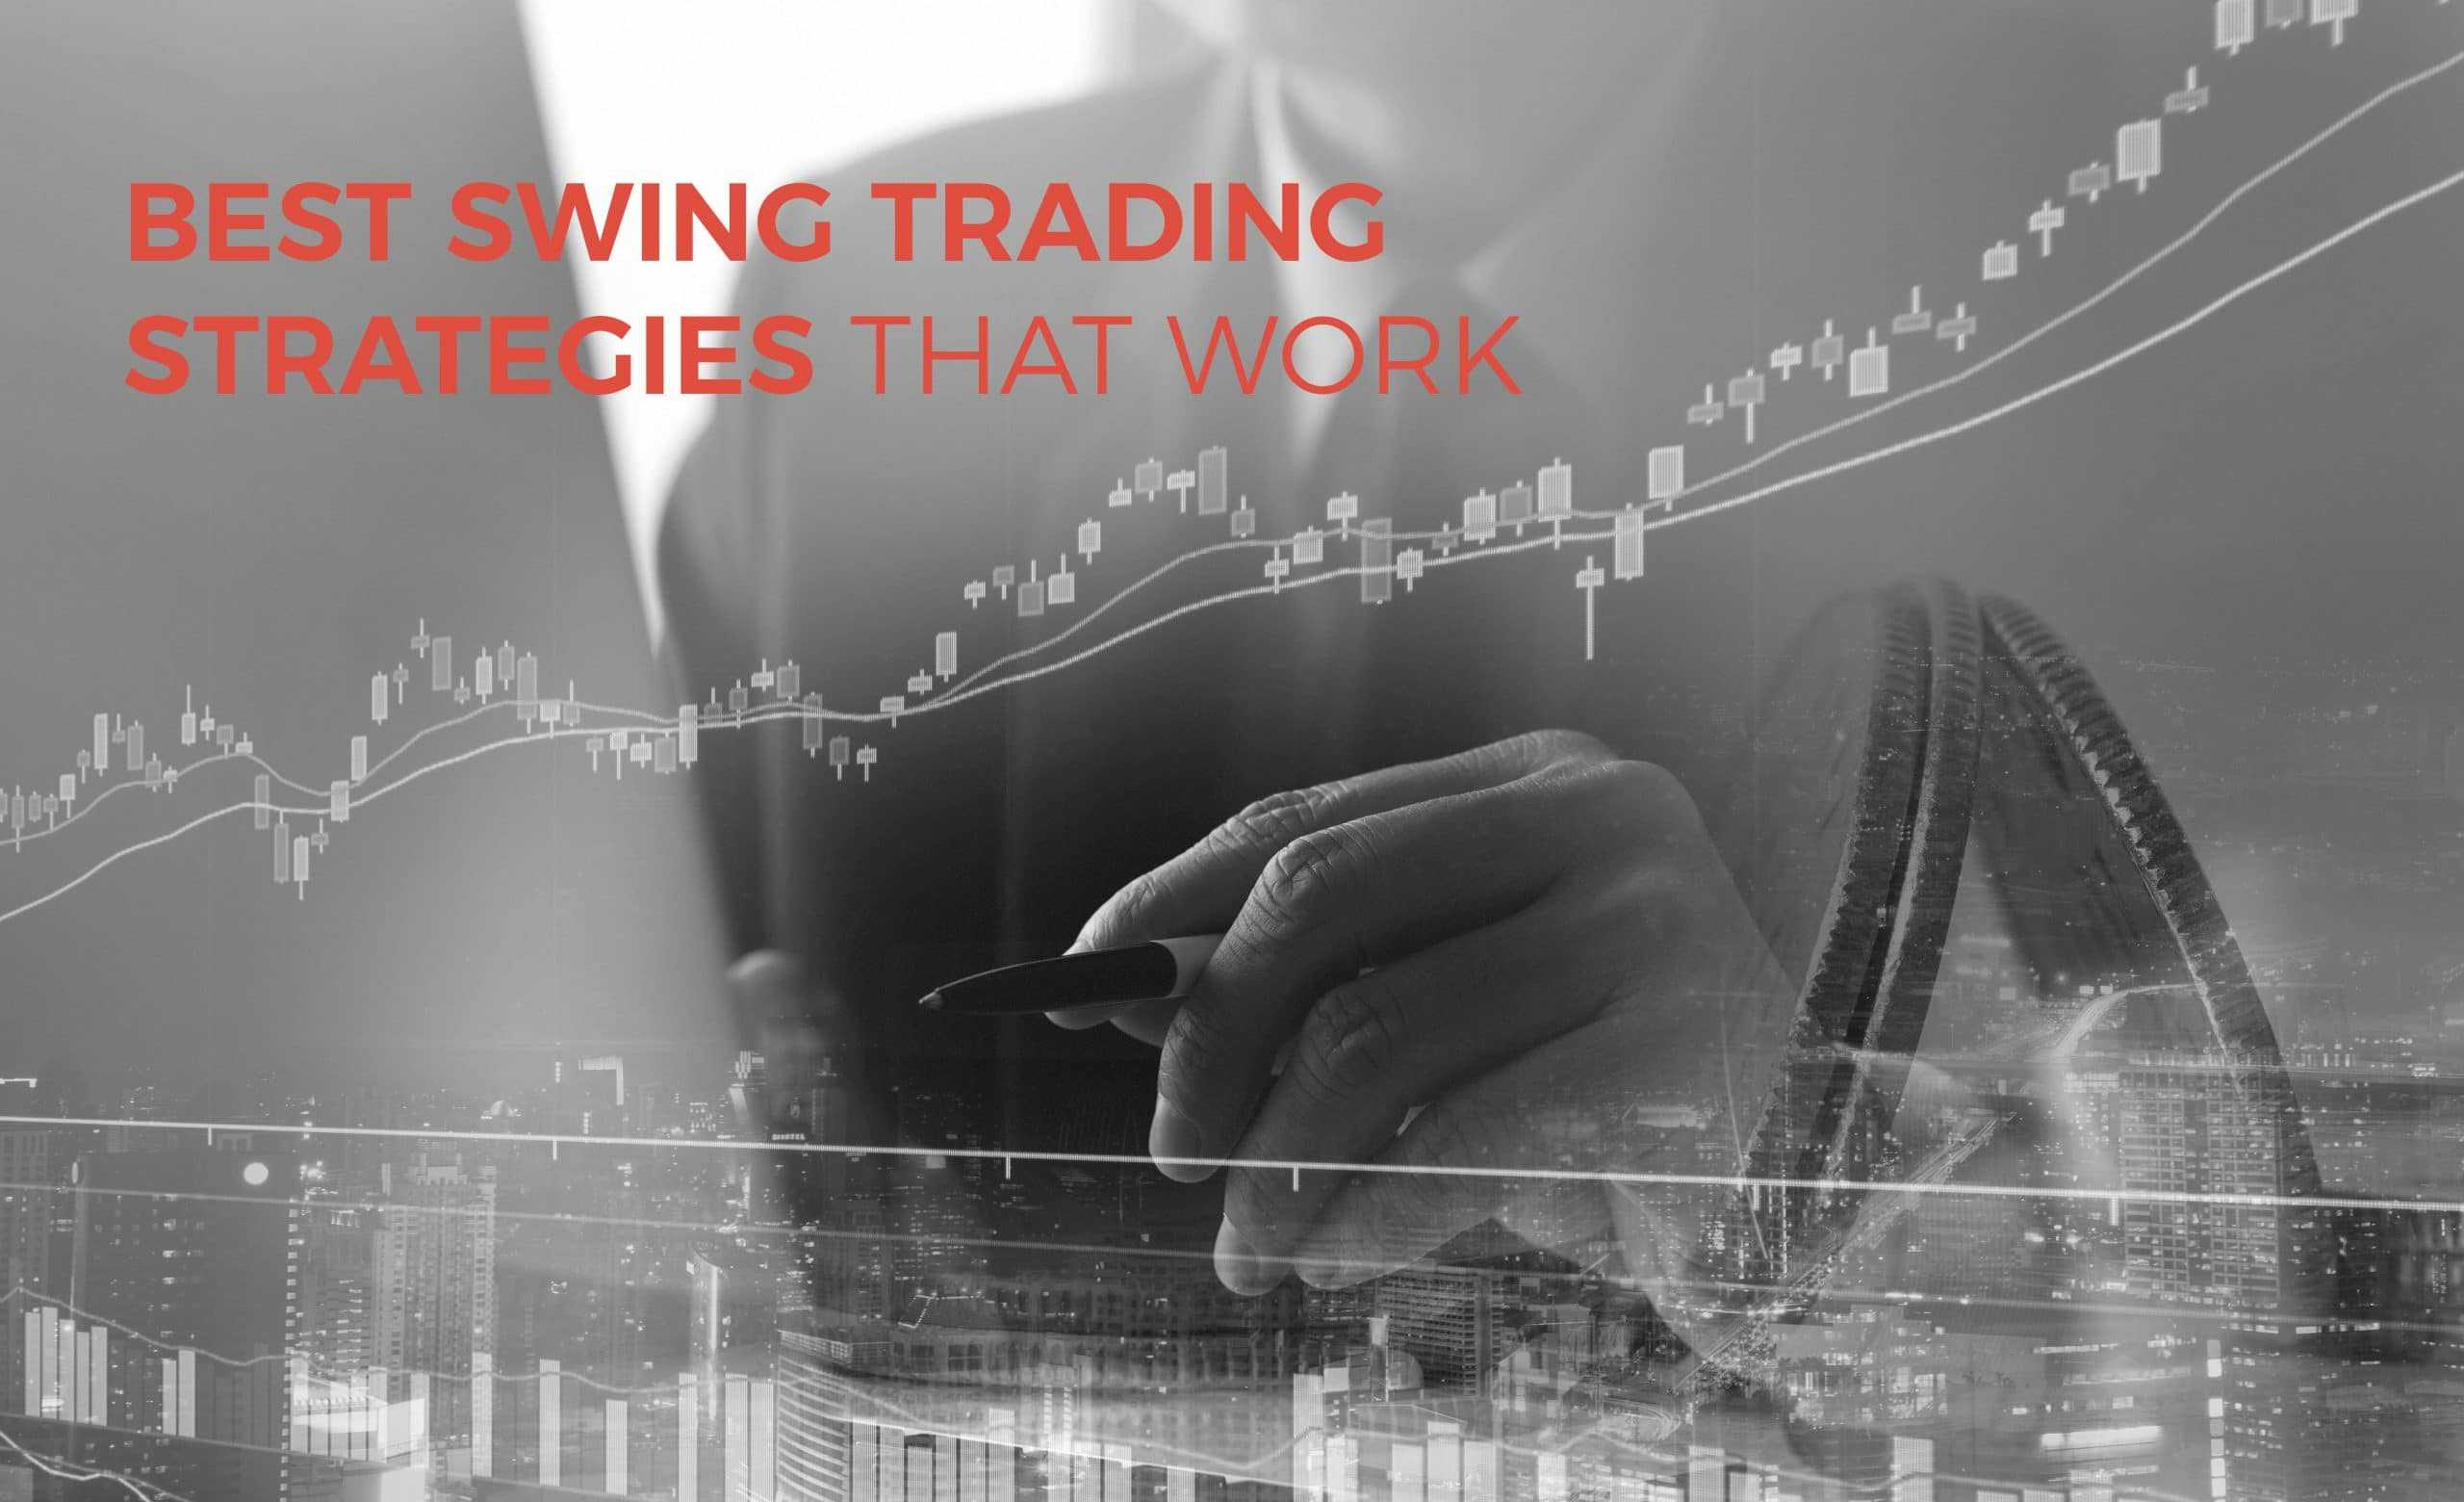 Best Swing Trading Strategies that Work